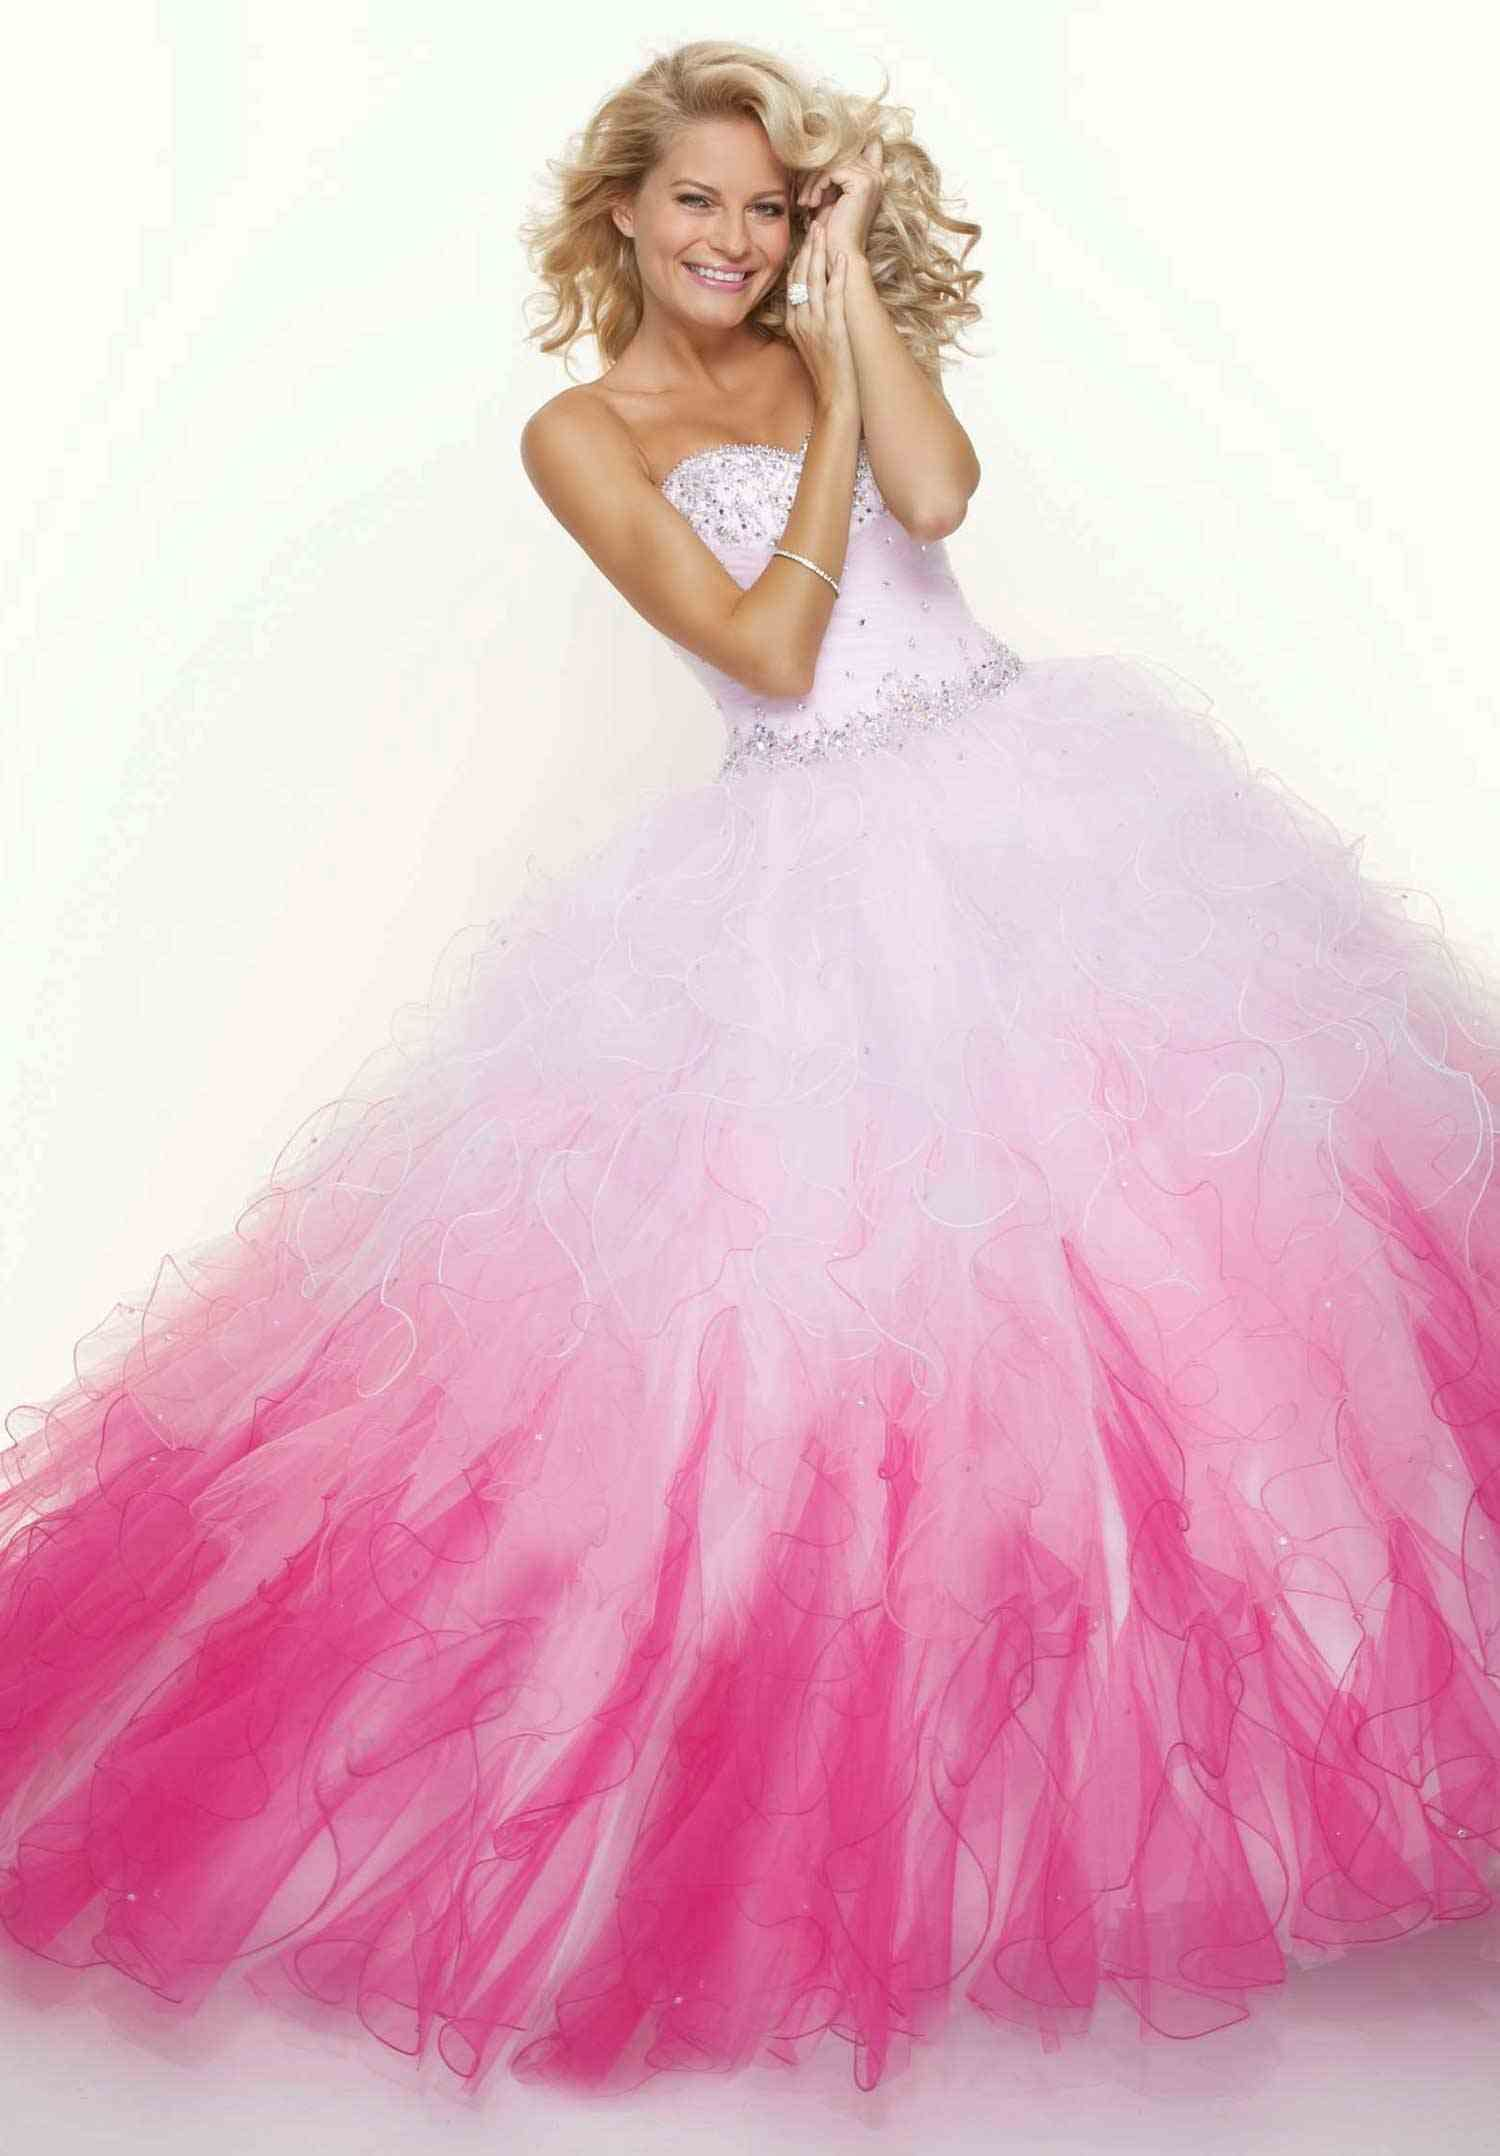 Pink Cinderella Prom Dress | wedding 2 | Pinterest | Vestidos de ...